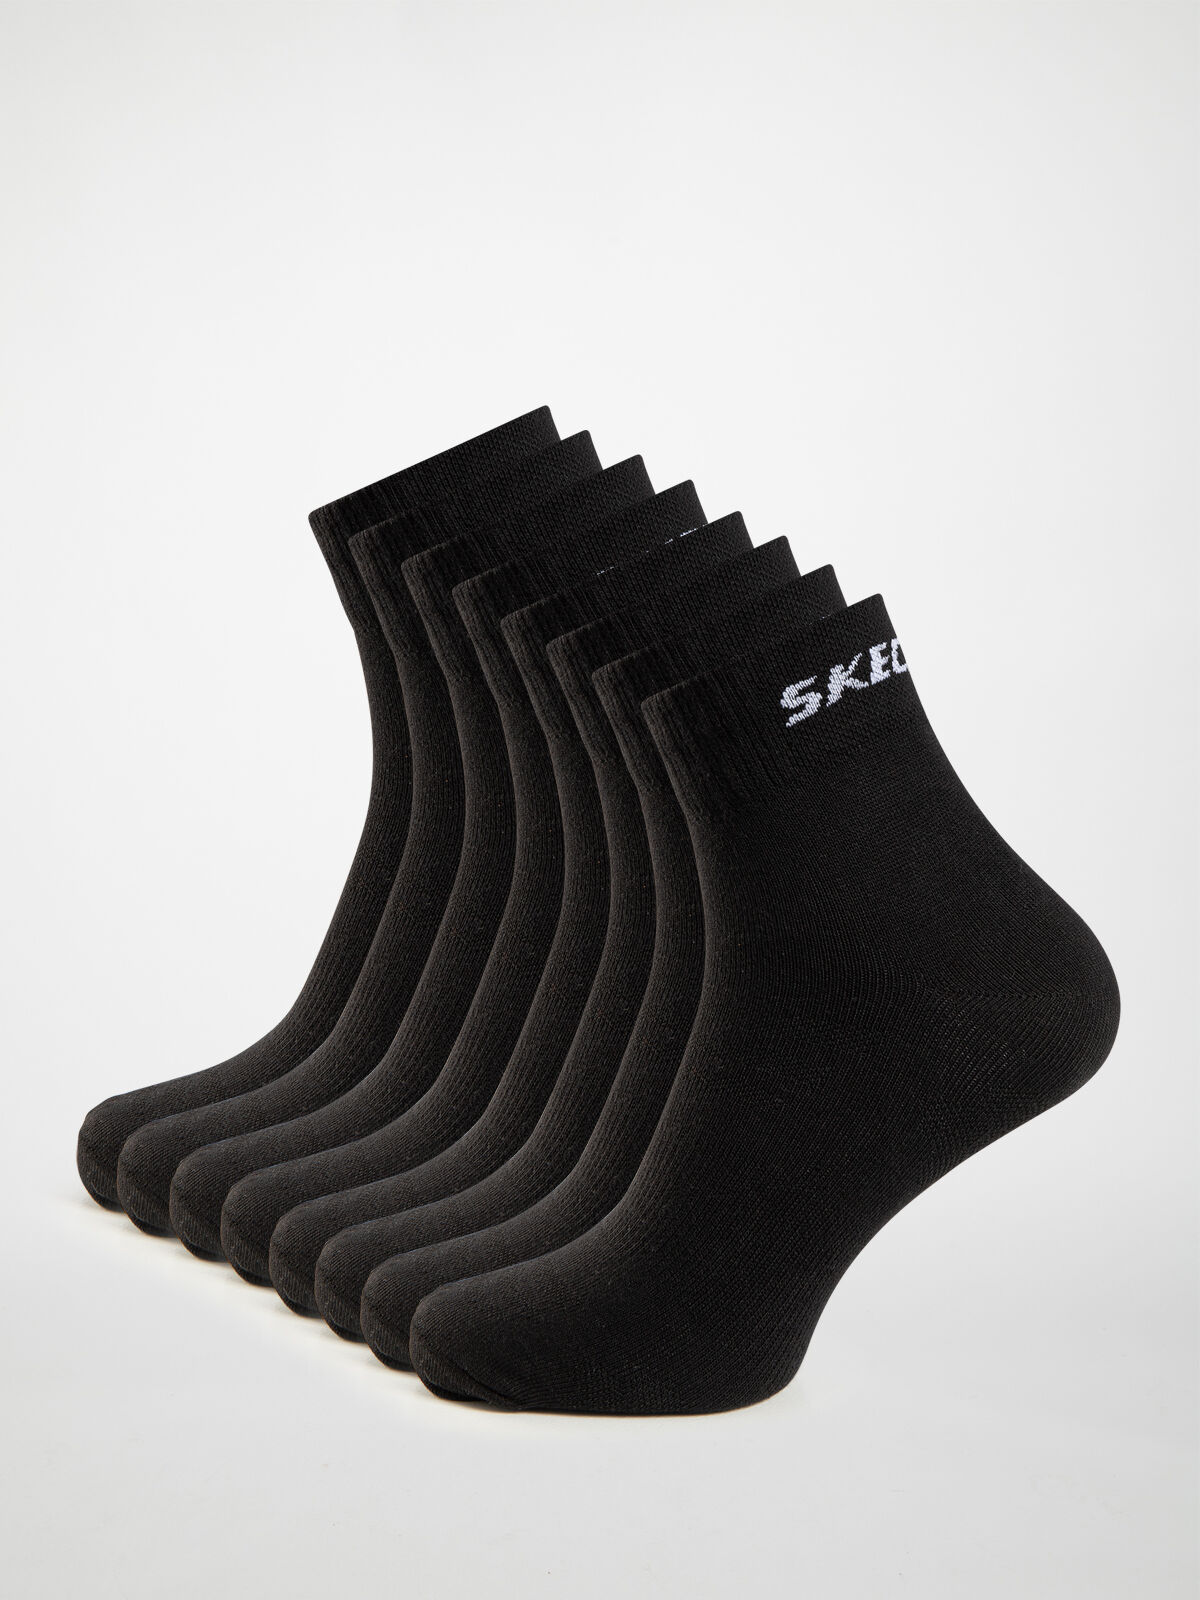 8-Pack of Socks